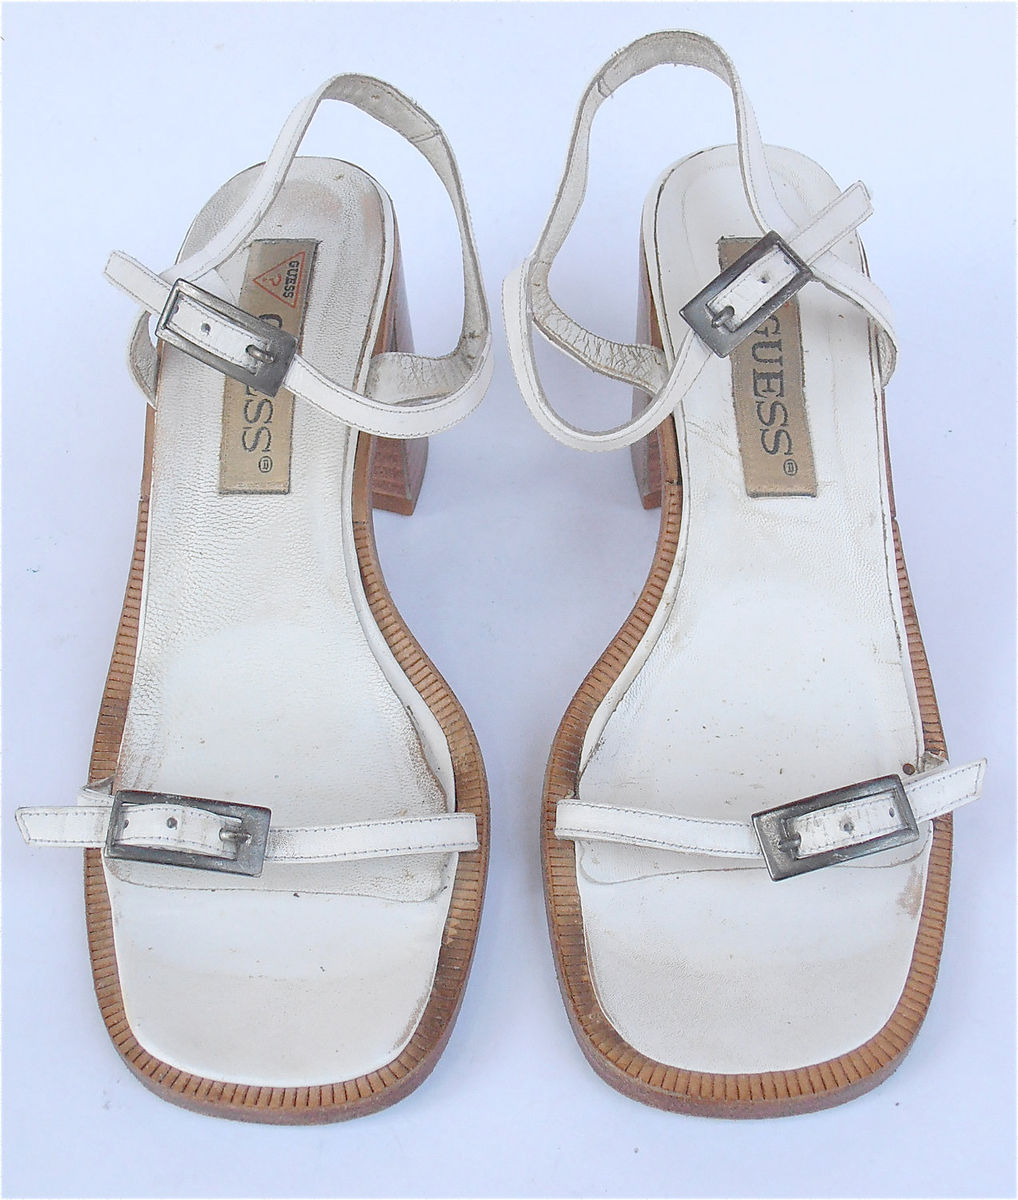 Vintage White Sandals White Strap Sandals White High Heel Sandals Guess Shoes White Designer Shoes White Retro Sandals White Leather Shoes - product images  of